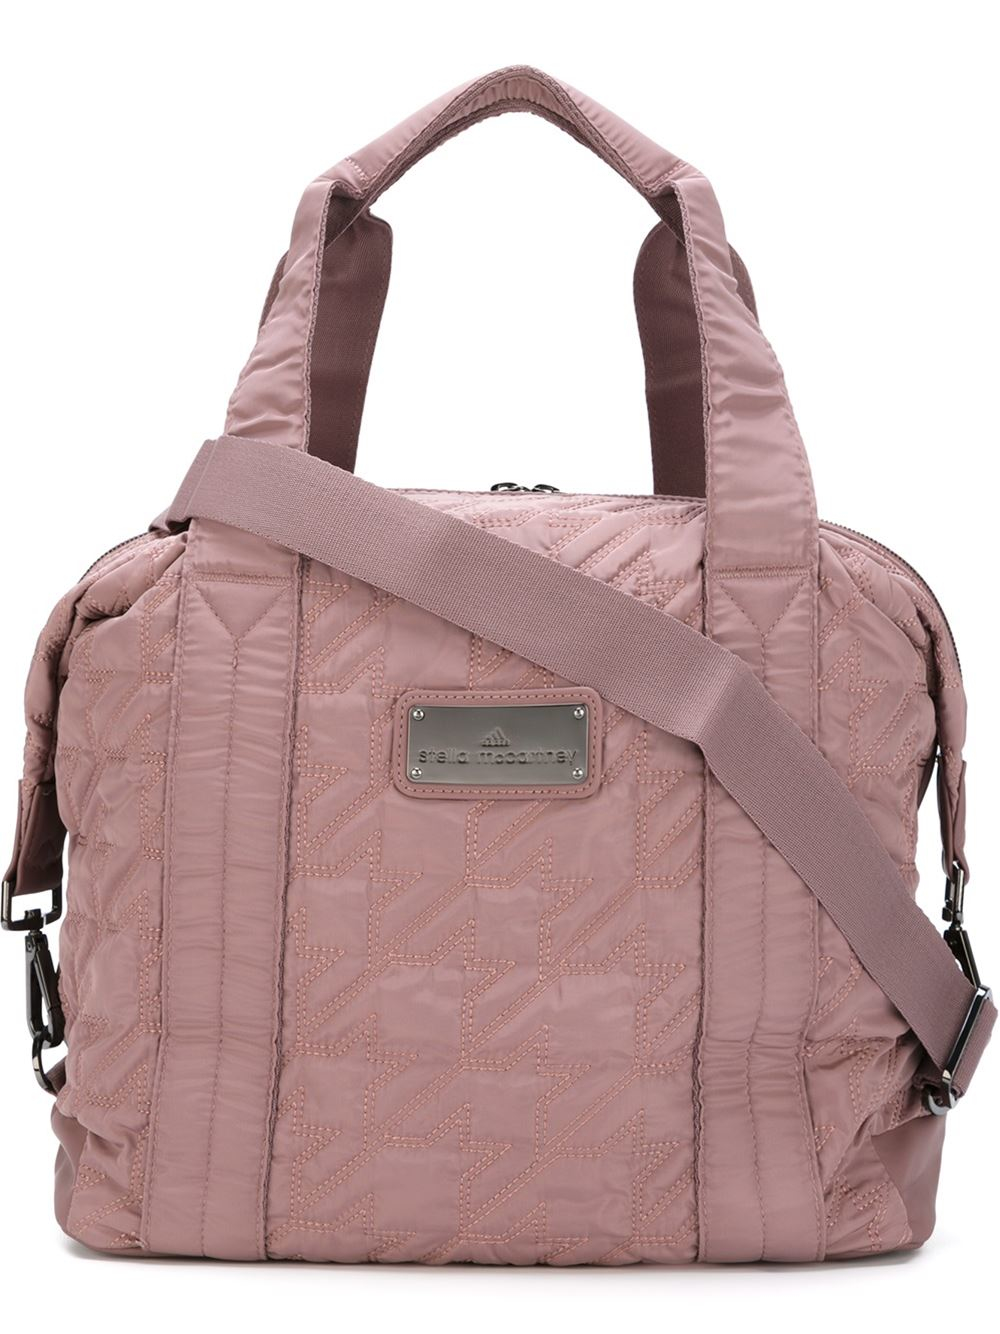 Lyst - adidas By Stella McCartney Quilted Sports Bag in Pink 3a38ba0b766aa